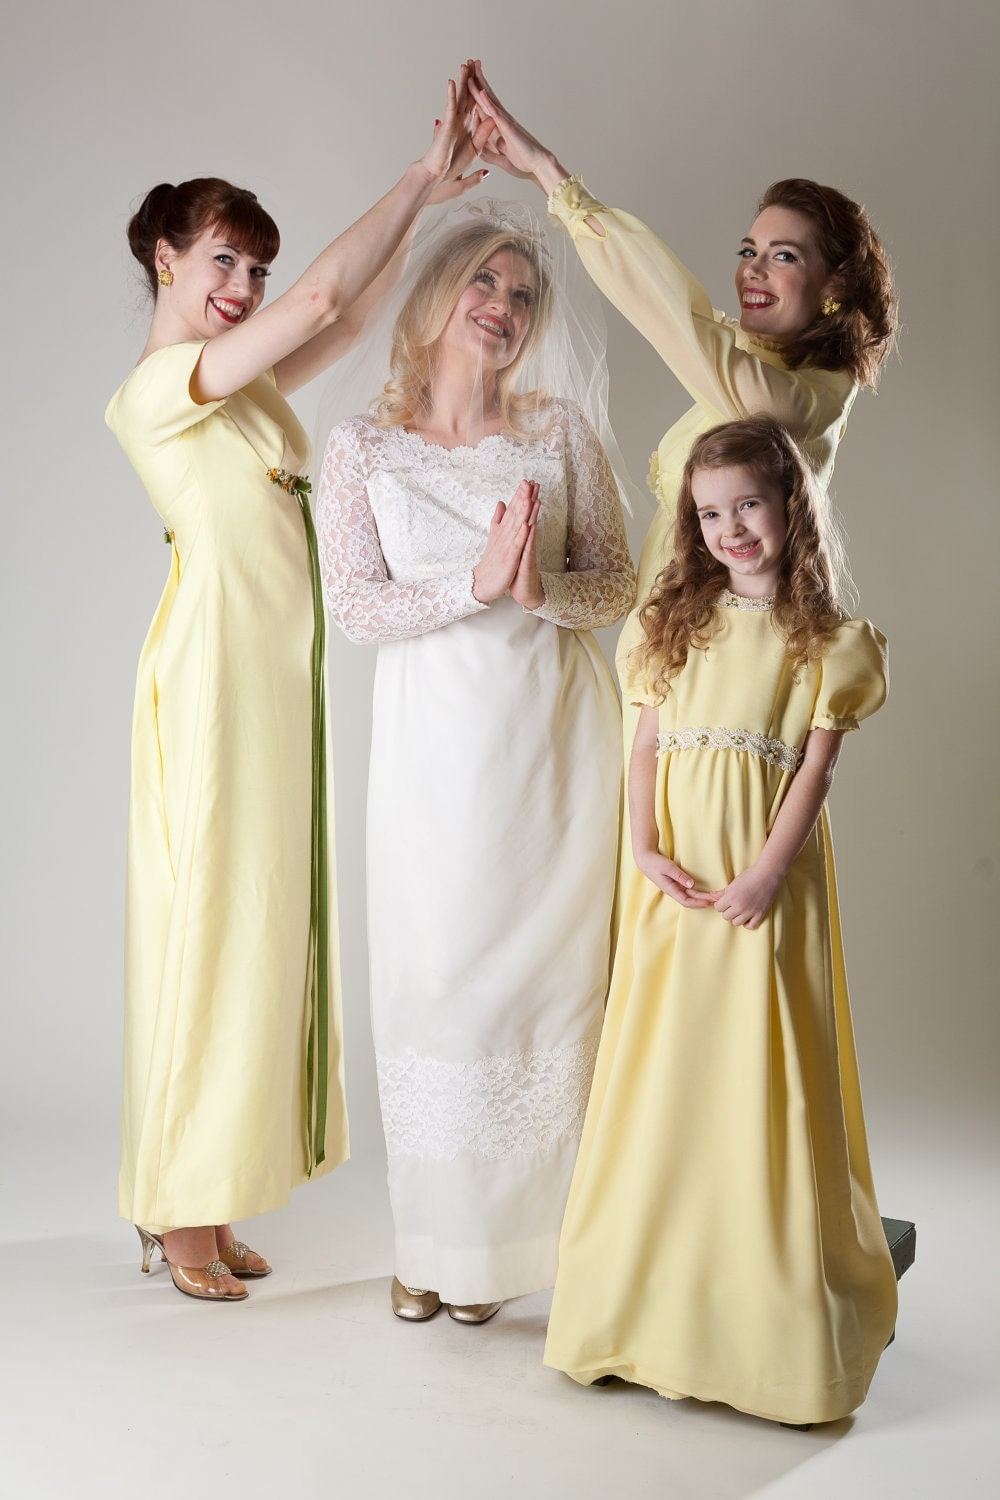 Vintage 1960s Yellow Bridesmaid Dresses Set of Three 1970s